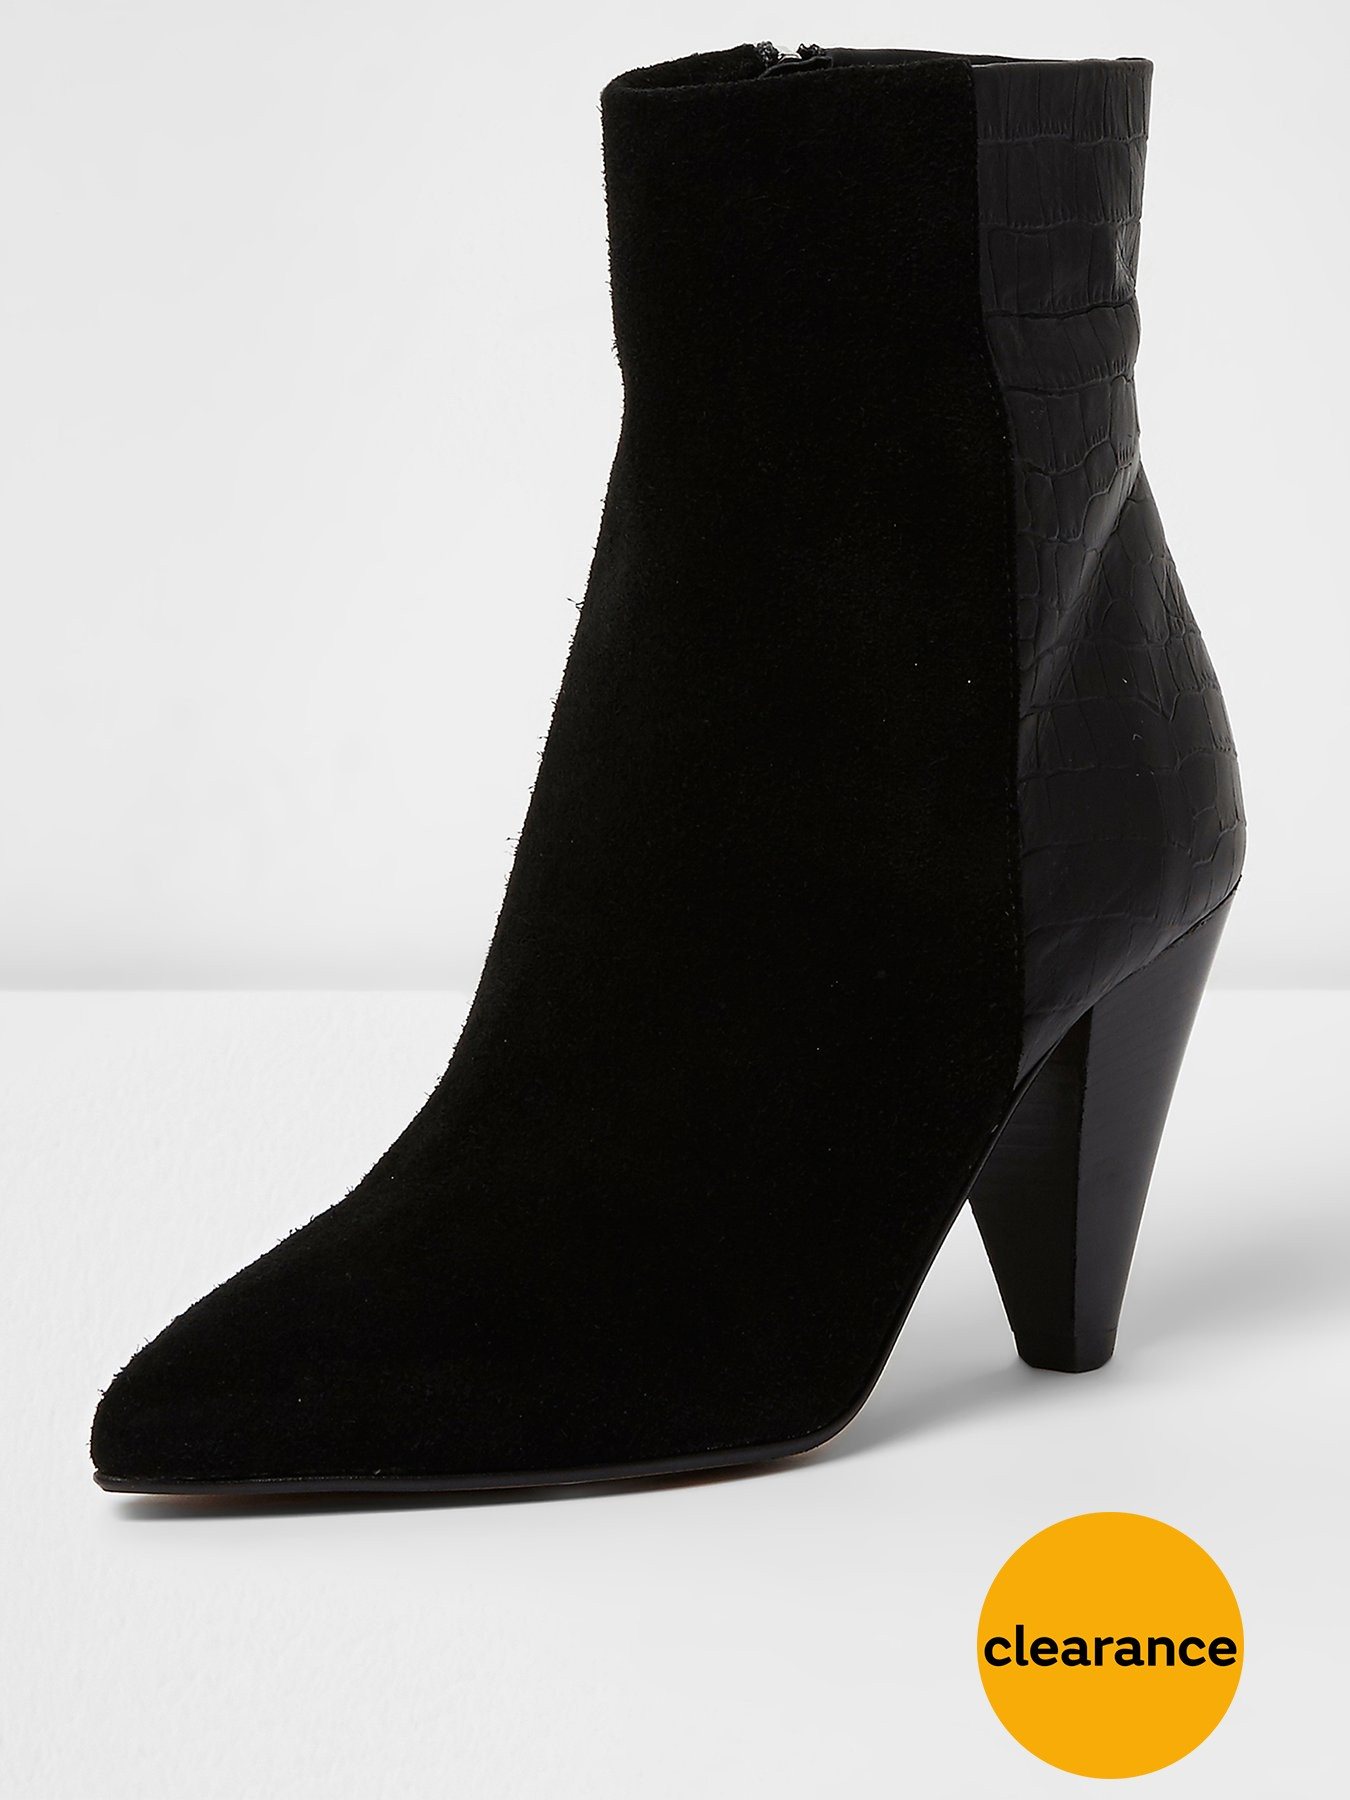 River Island Cone Heel Boot 1600220652 Women's Shoes River Island Boots